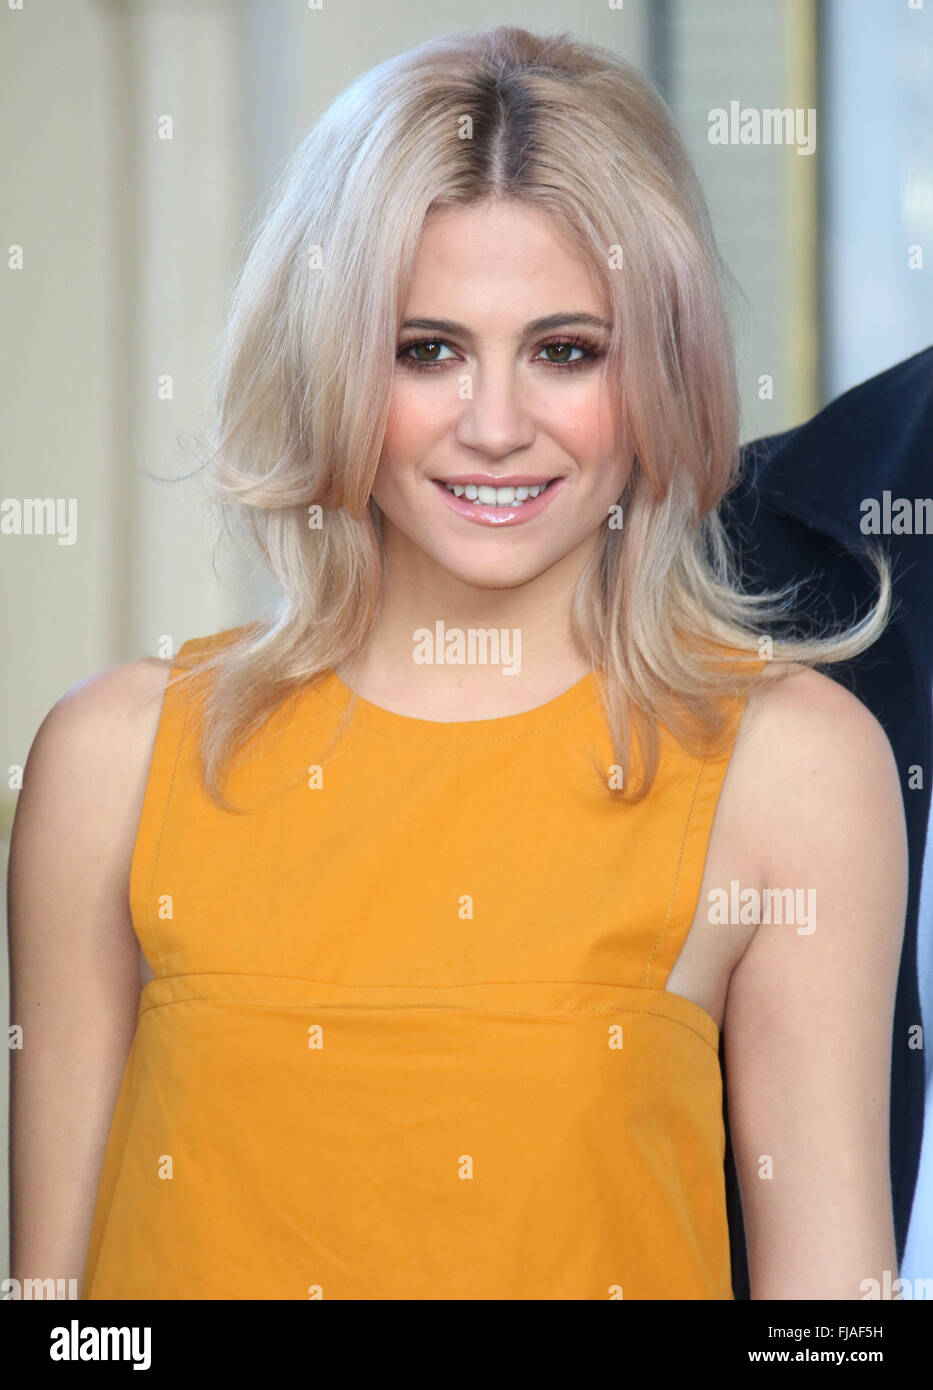 January 28, 2016 - Pixie Lott attending photocall for a new stage adaptation of Truman Capote's 'Breakfast - Stock Image